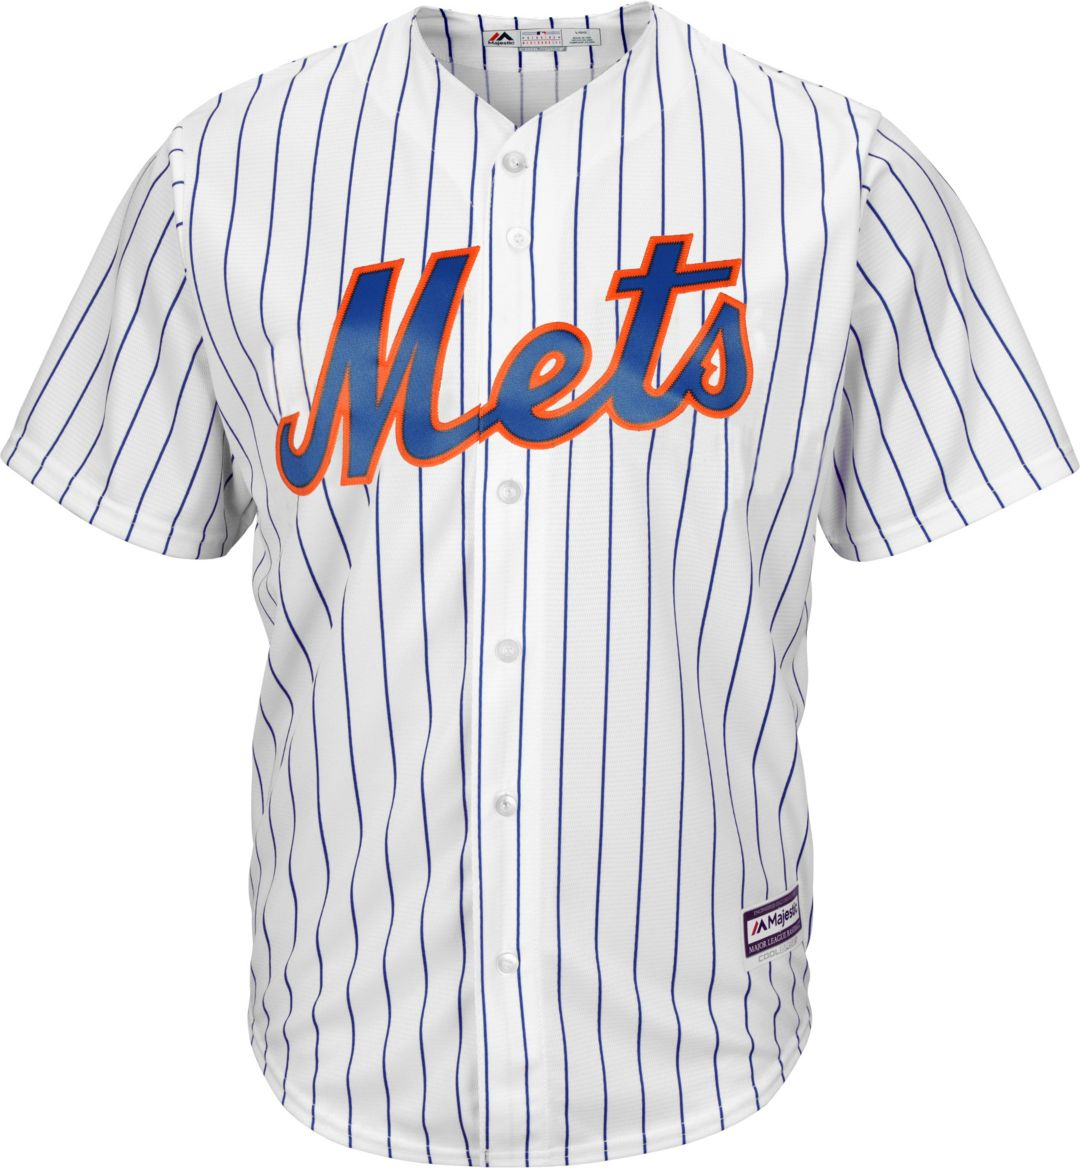 new arrivals 4d9a8 14145 Majestic Men's Replica New York Mets Jacob deGrom #48 Cool Base Home White  Jersey